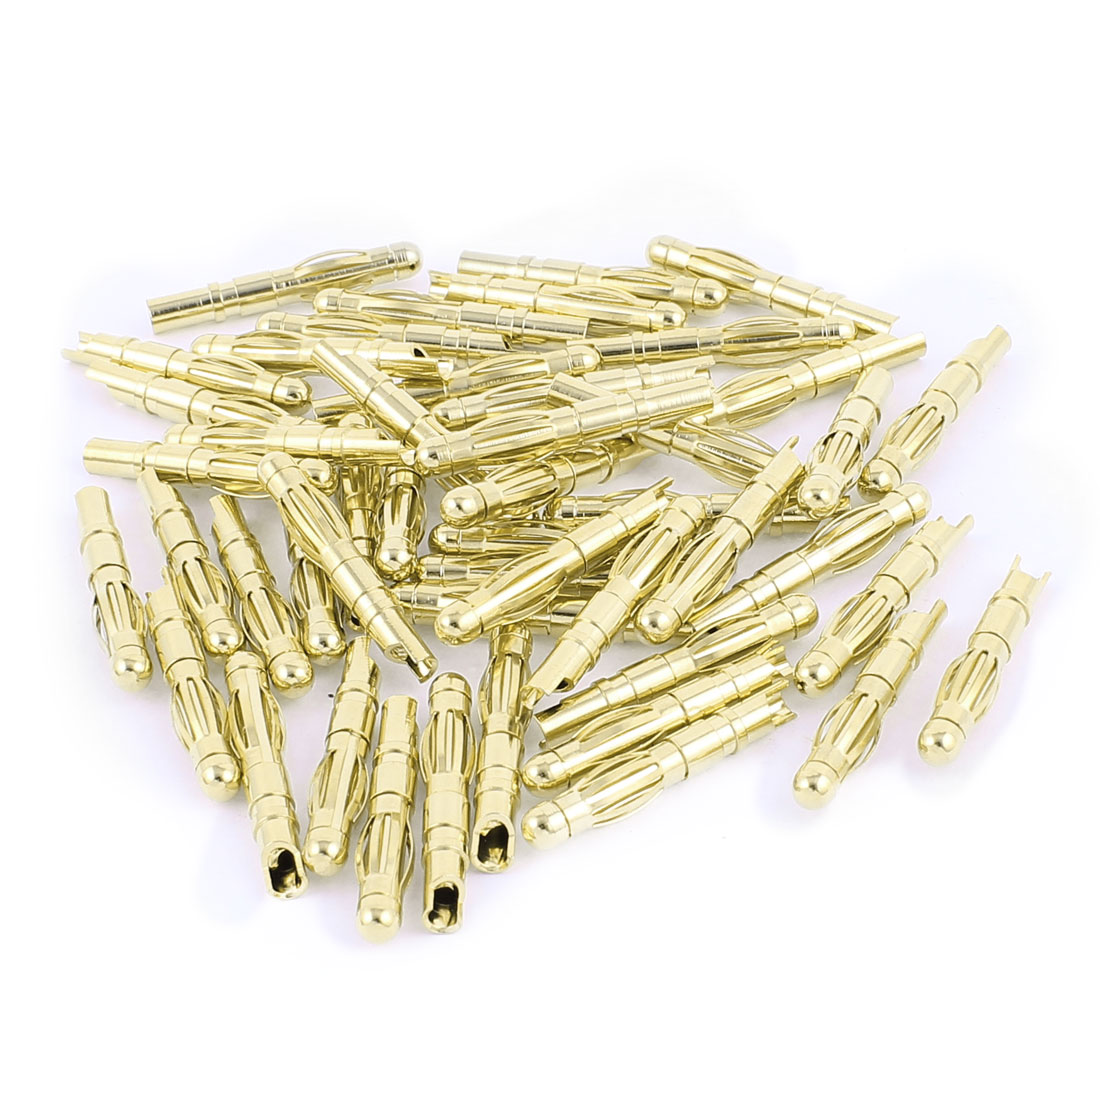 49 Pcs Gold Tone Copper Hemihedral 4mm Banana Jack Connector